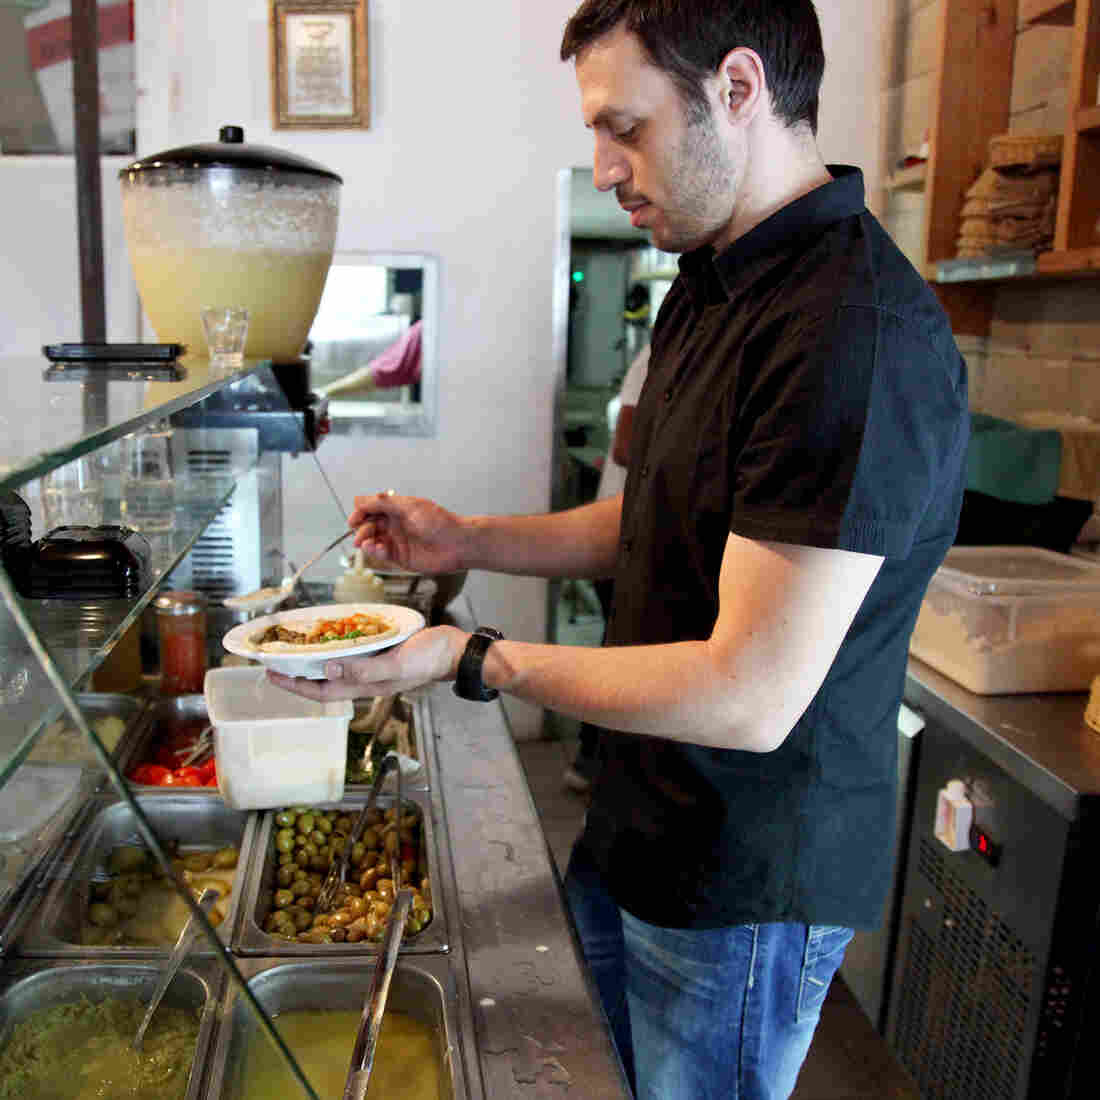 Hummus Diplomacy: Israeli Cafe Discounts Meals Shared By Jews And Arabs